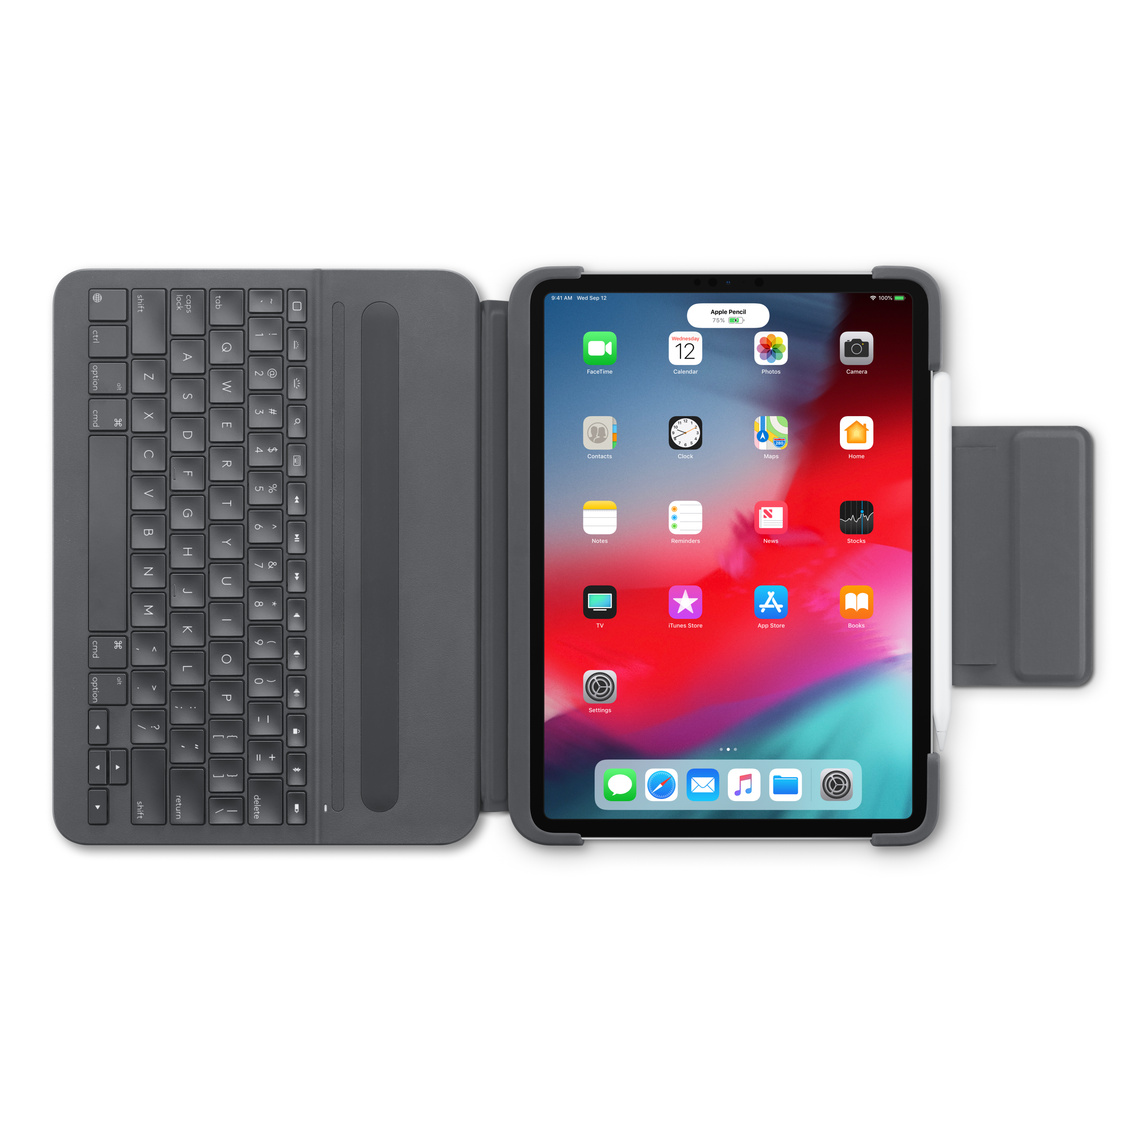 new concept 8d8b8 f8afa Logitech Slim Folio Pro Case with Integrated Bluetooth Keyboard for 11